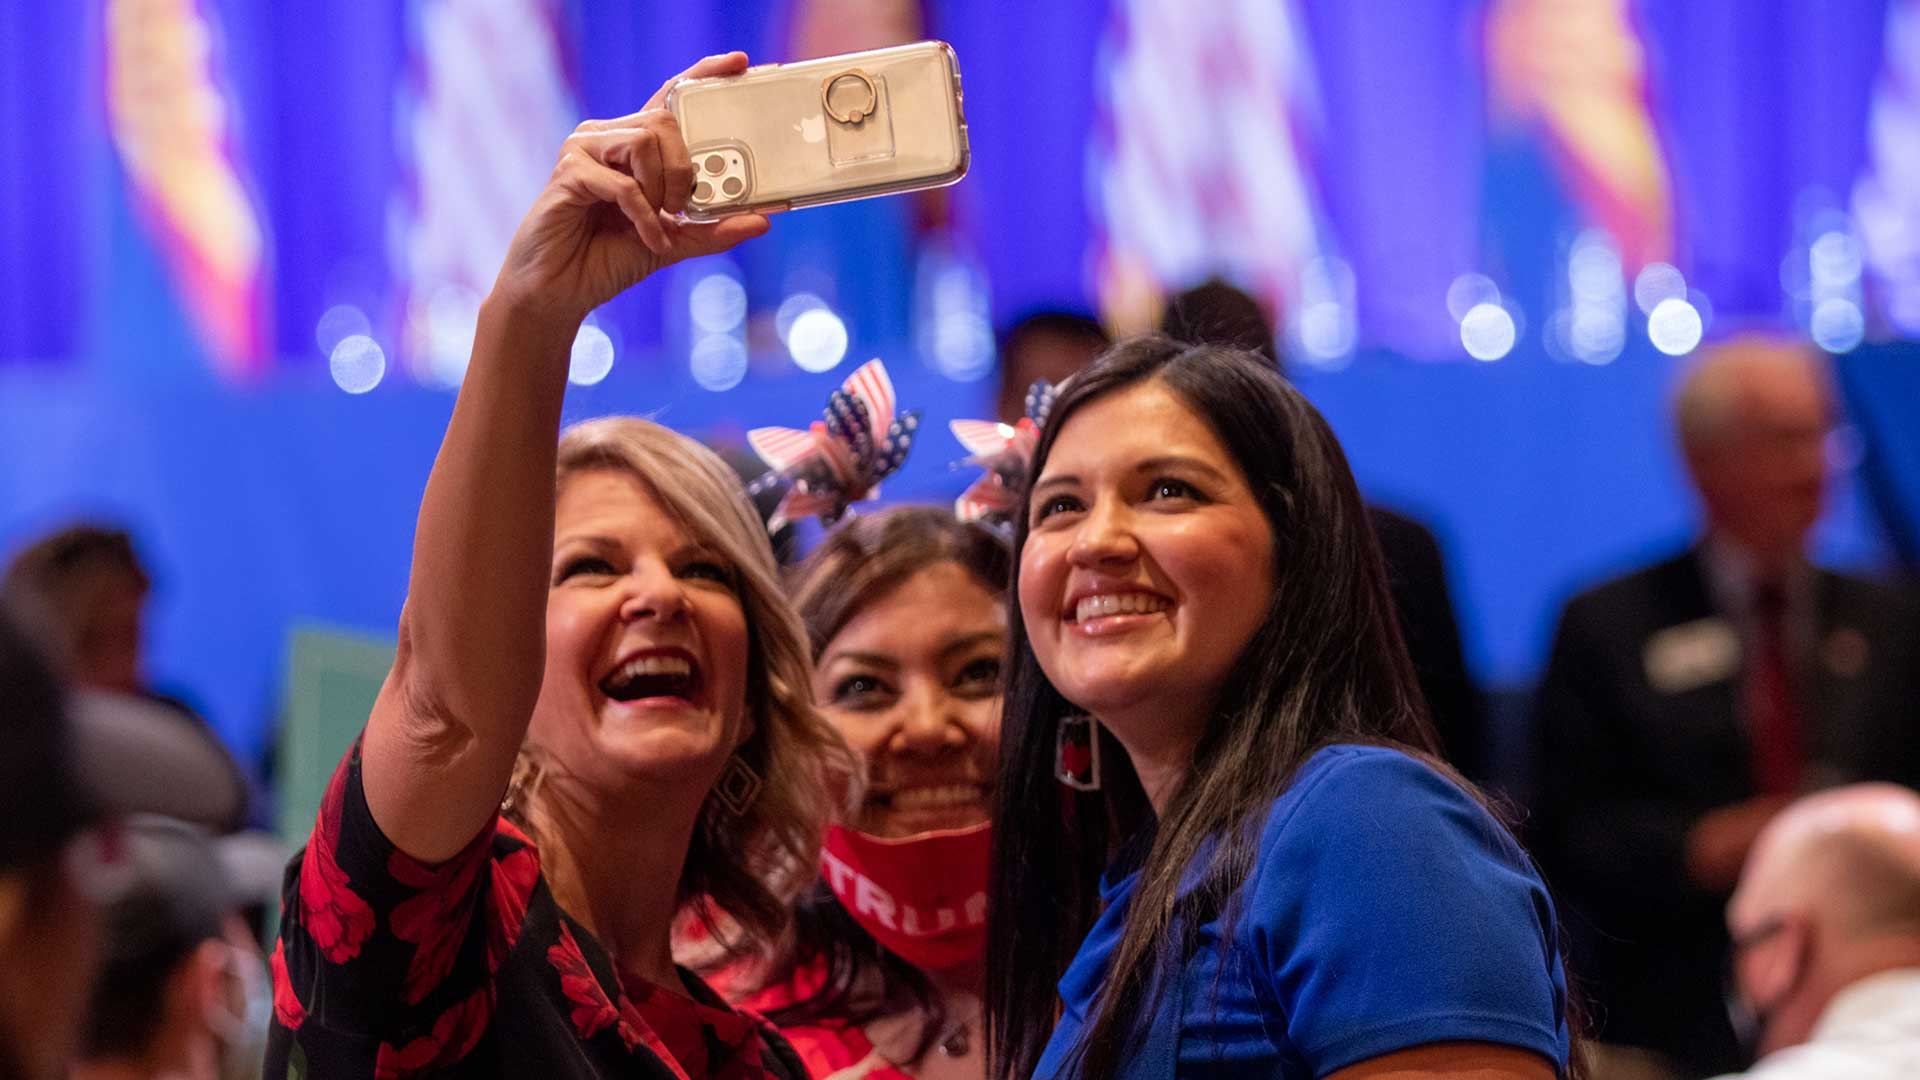 Arizona Republican Party Chairwoman Kelli Ward snaps a selfie with supporters of President Donald Trump at a Latinos for Trump event in Phoenix, Monday, Sept. 14. Like Ward, most of those attending the roundtable were maskless.